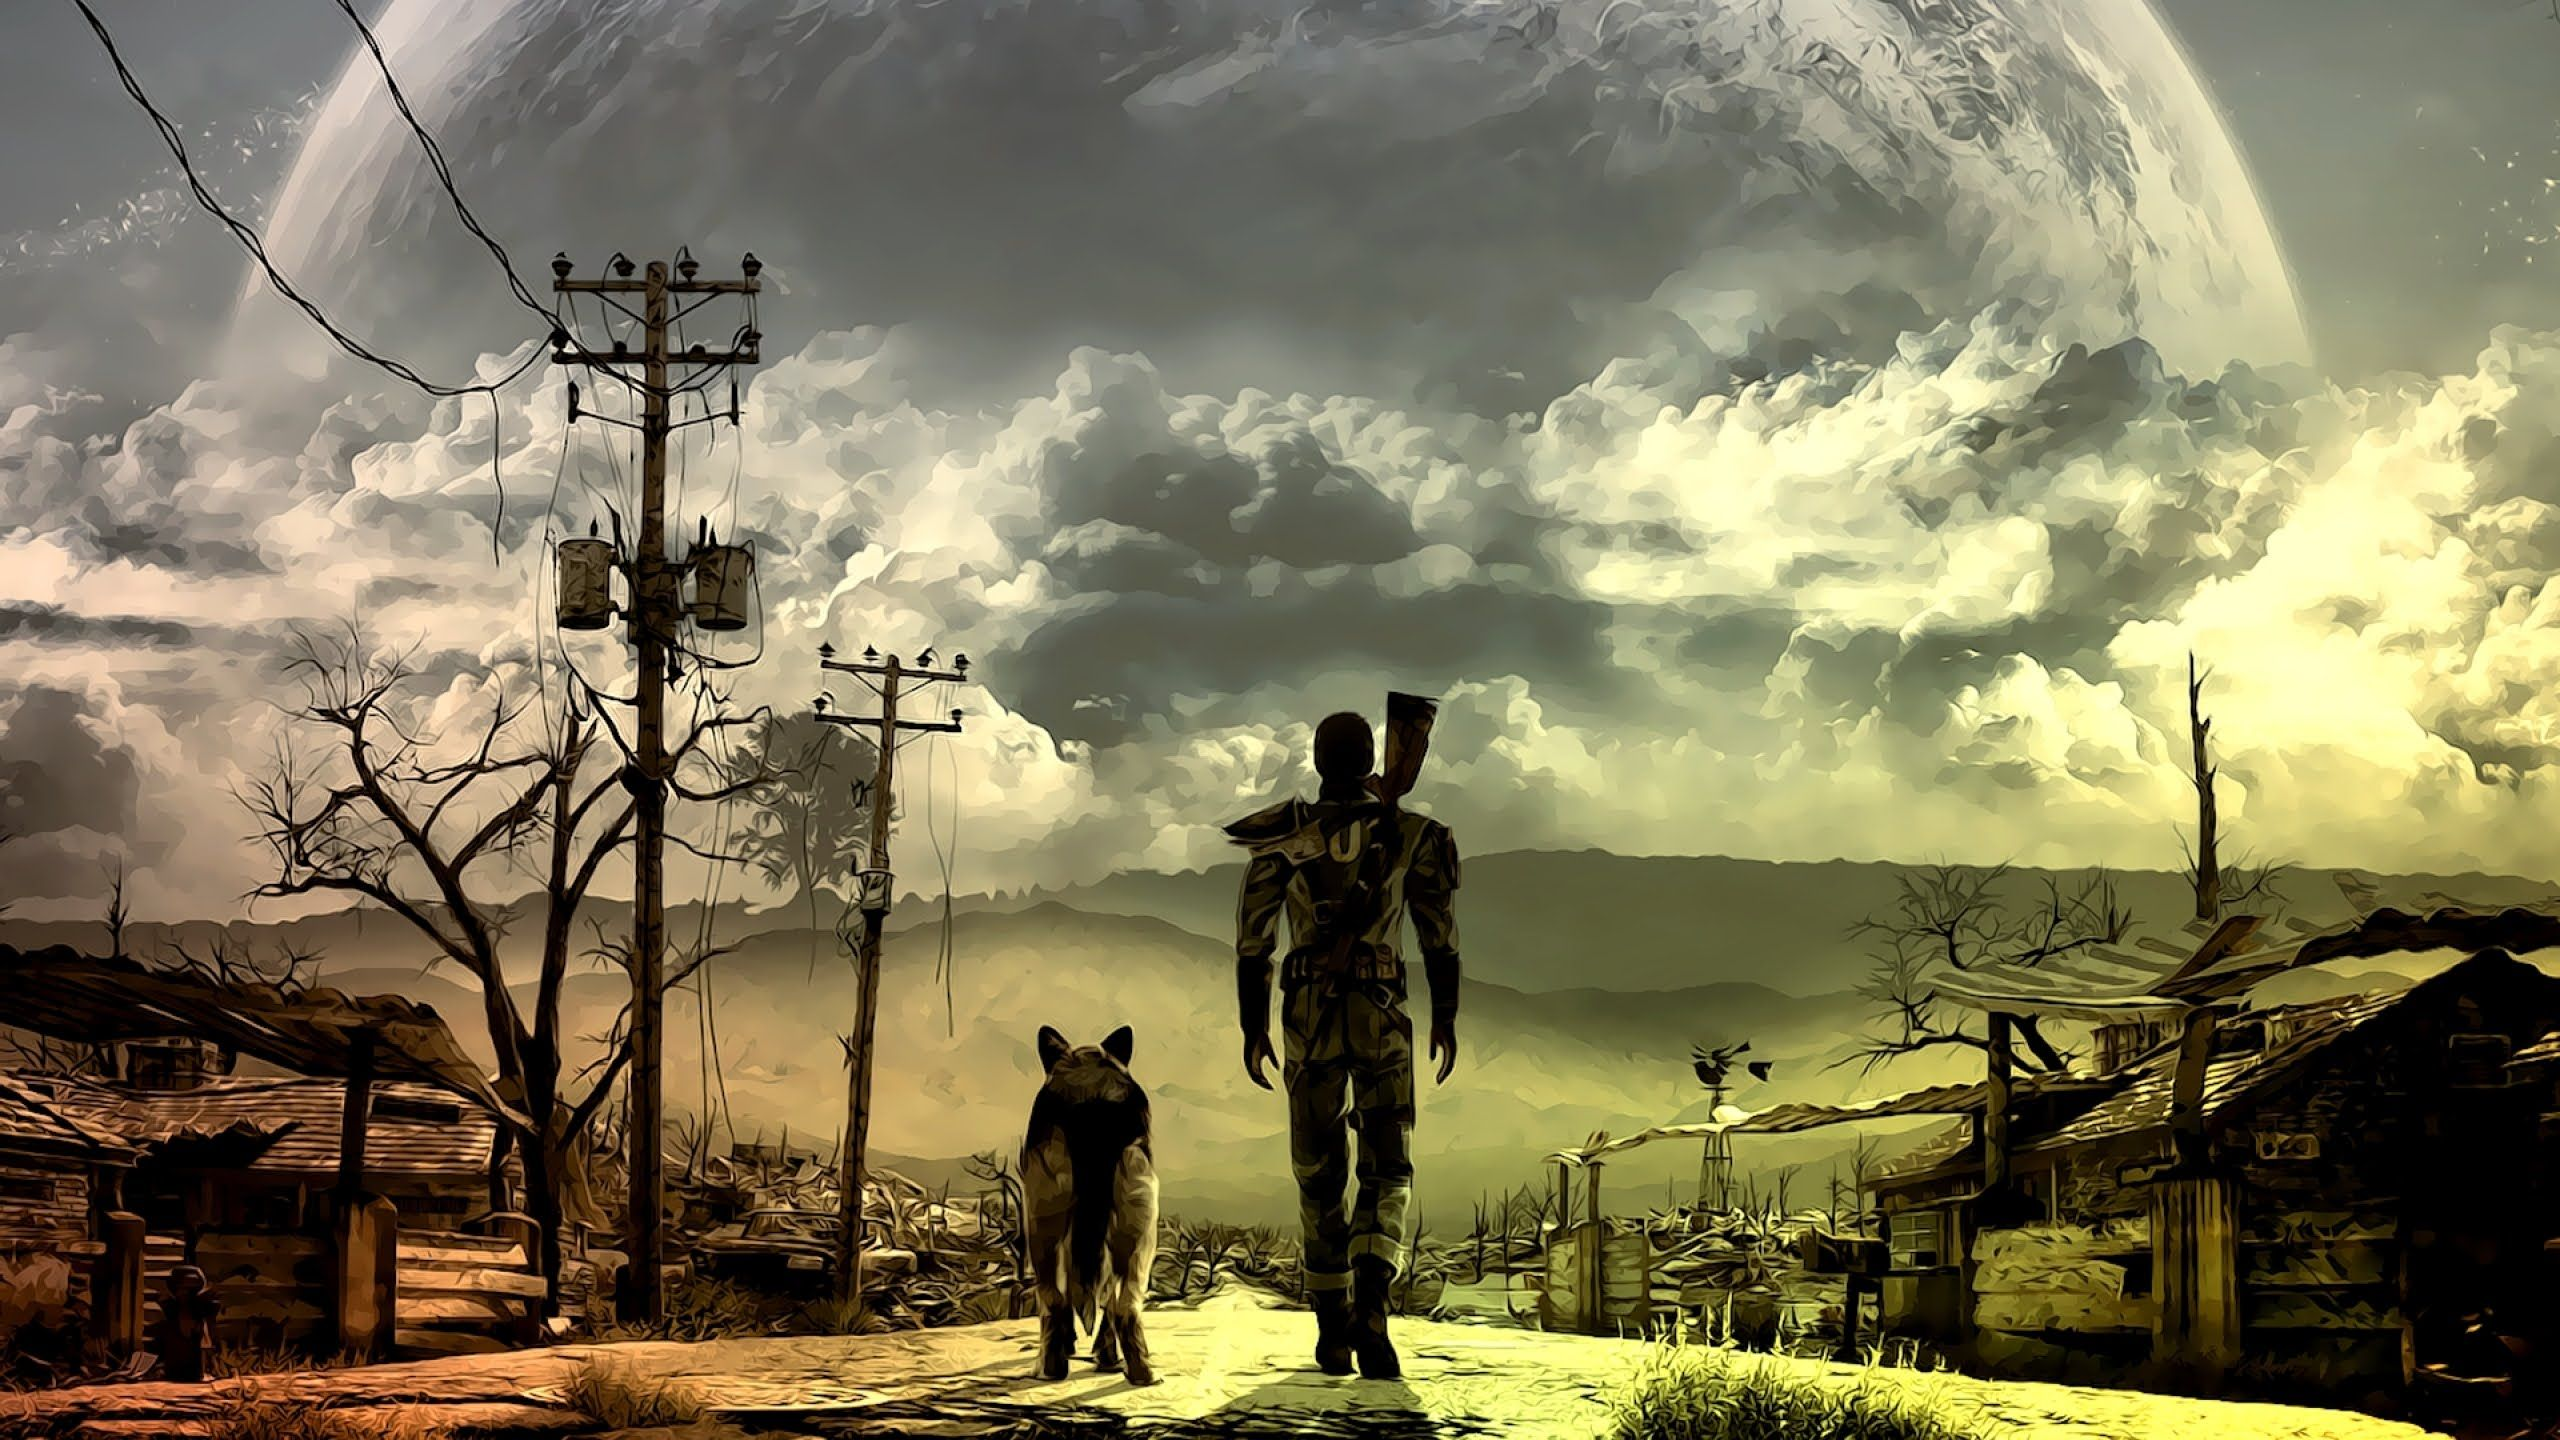 Fallout 4 background 2560x1440